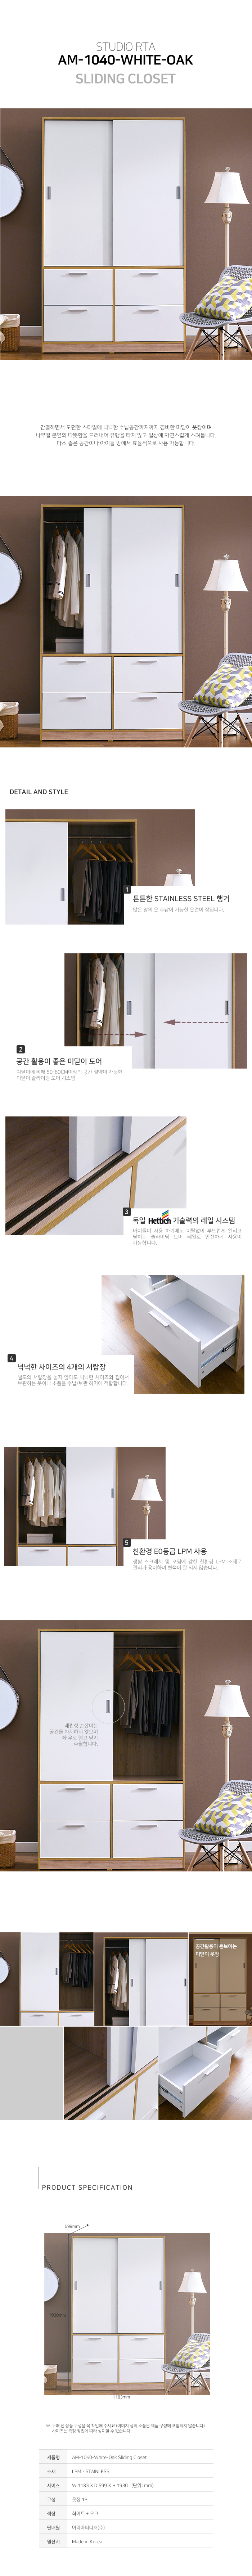 AM-1040-White-Oak Sliding Closet.jpg